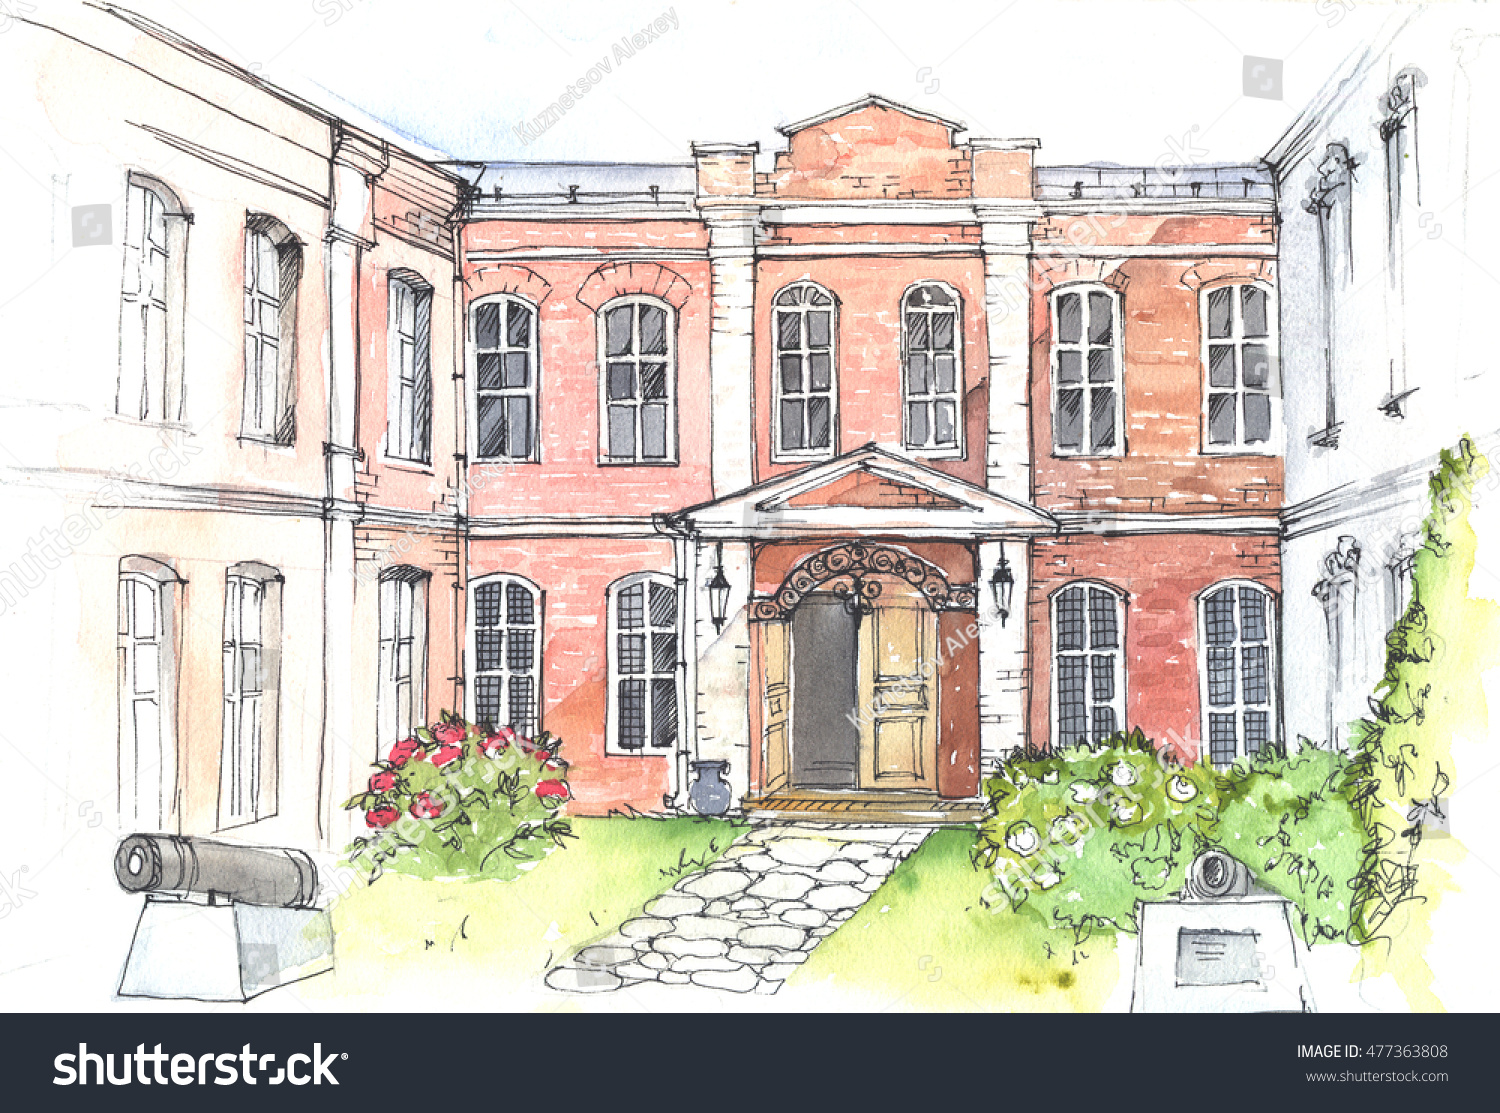 Watercolor And Pen Drawing Of An Old Mansion In The Style Classicism